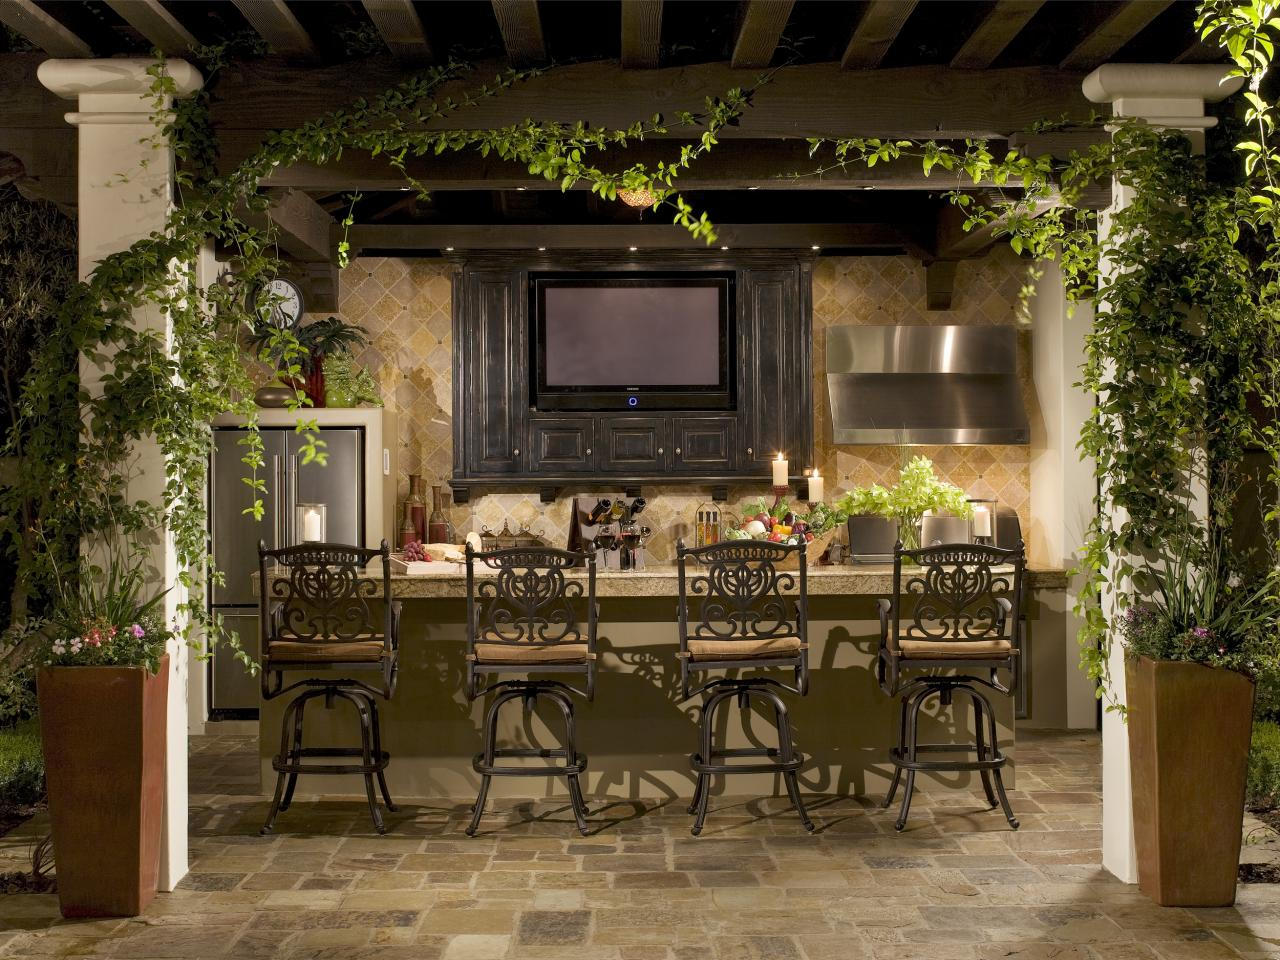 Outdoor Bars: Options and Ideas | HGTV